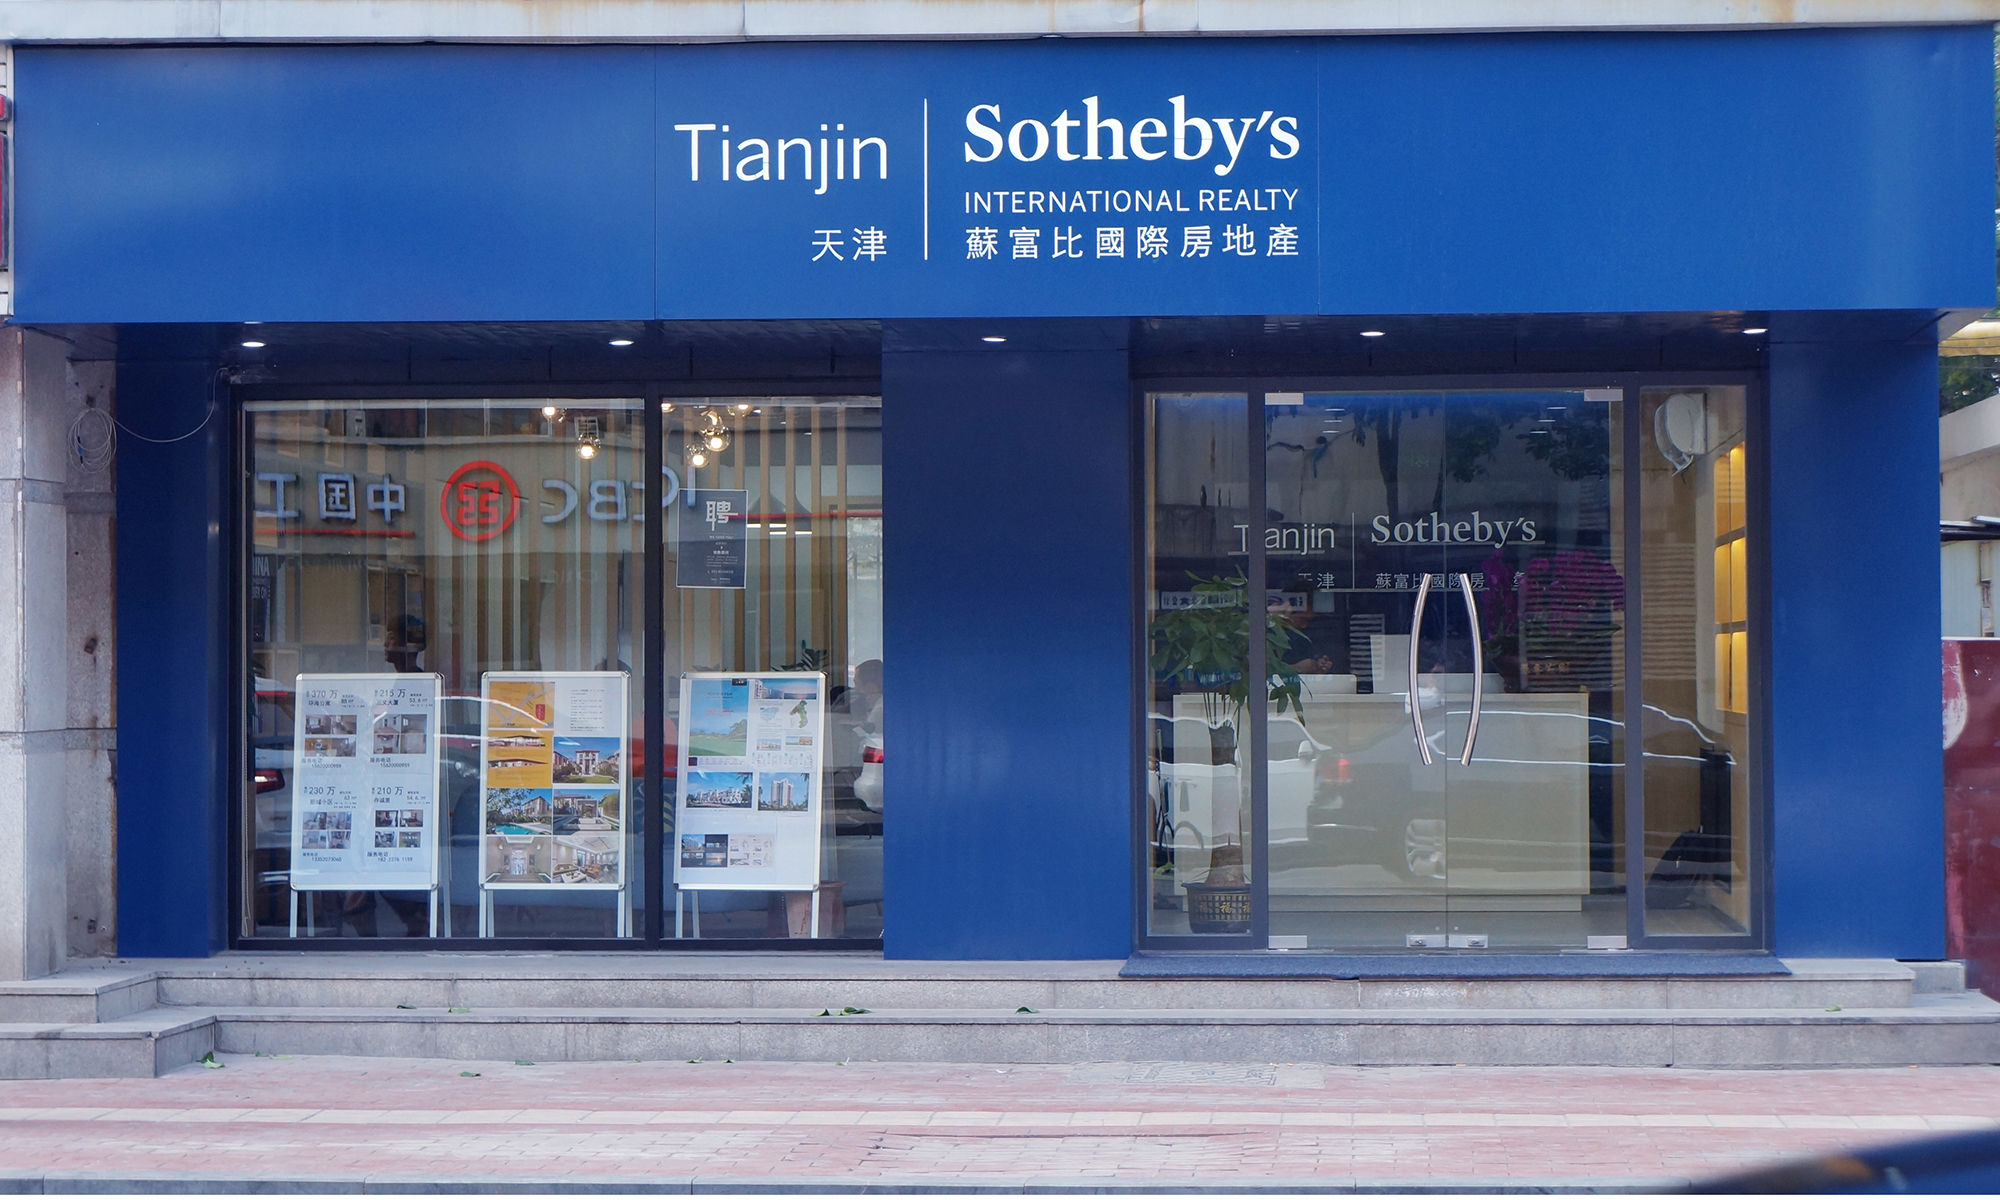 Tianjin Sotheby's International Realty